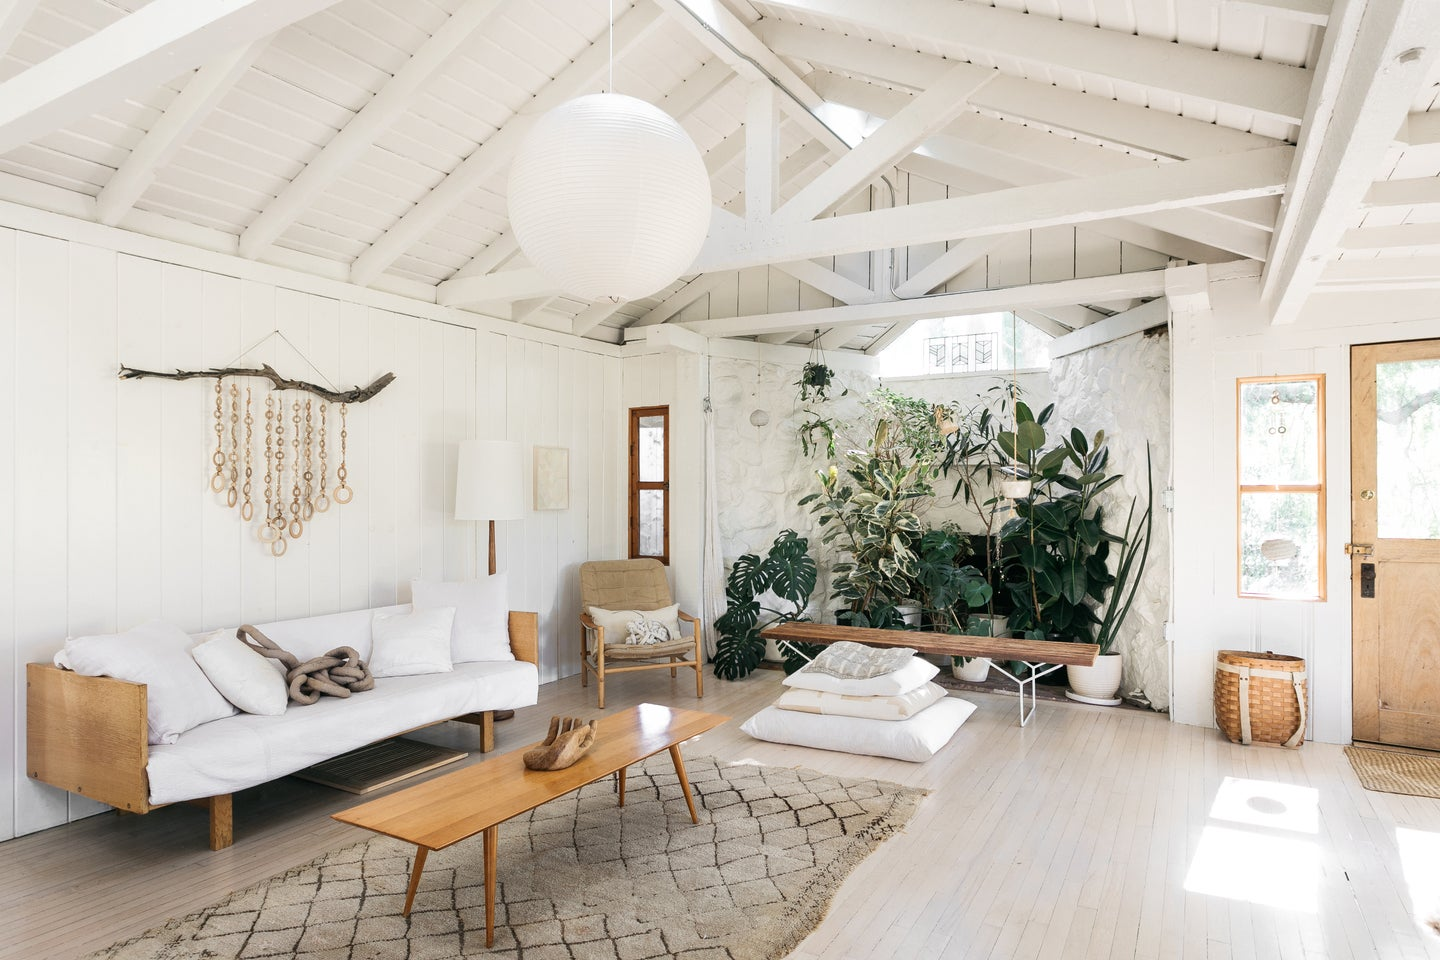 open and airy living room with white wood beams